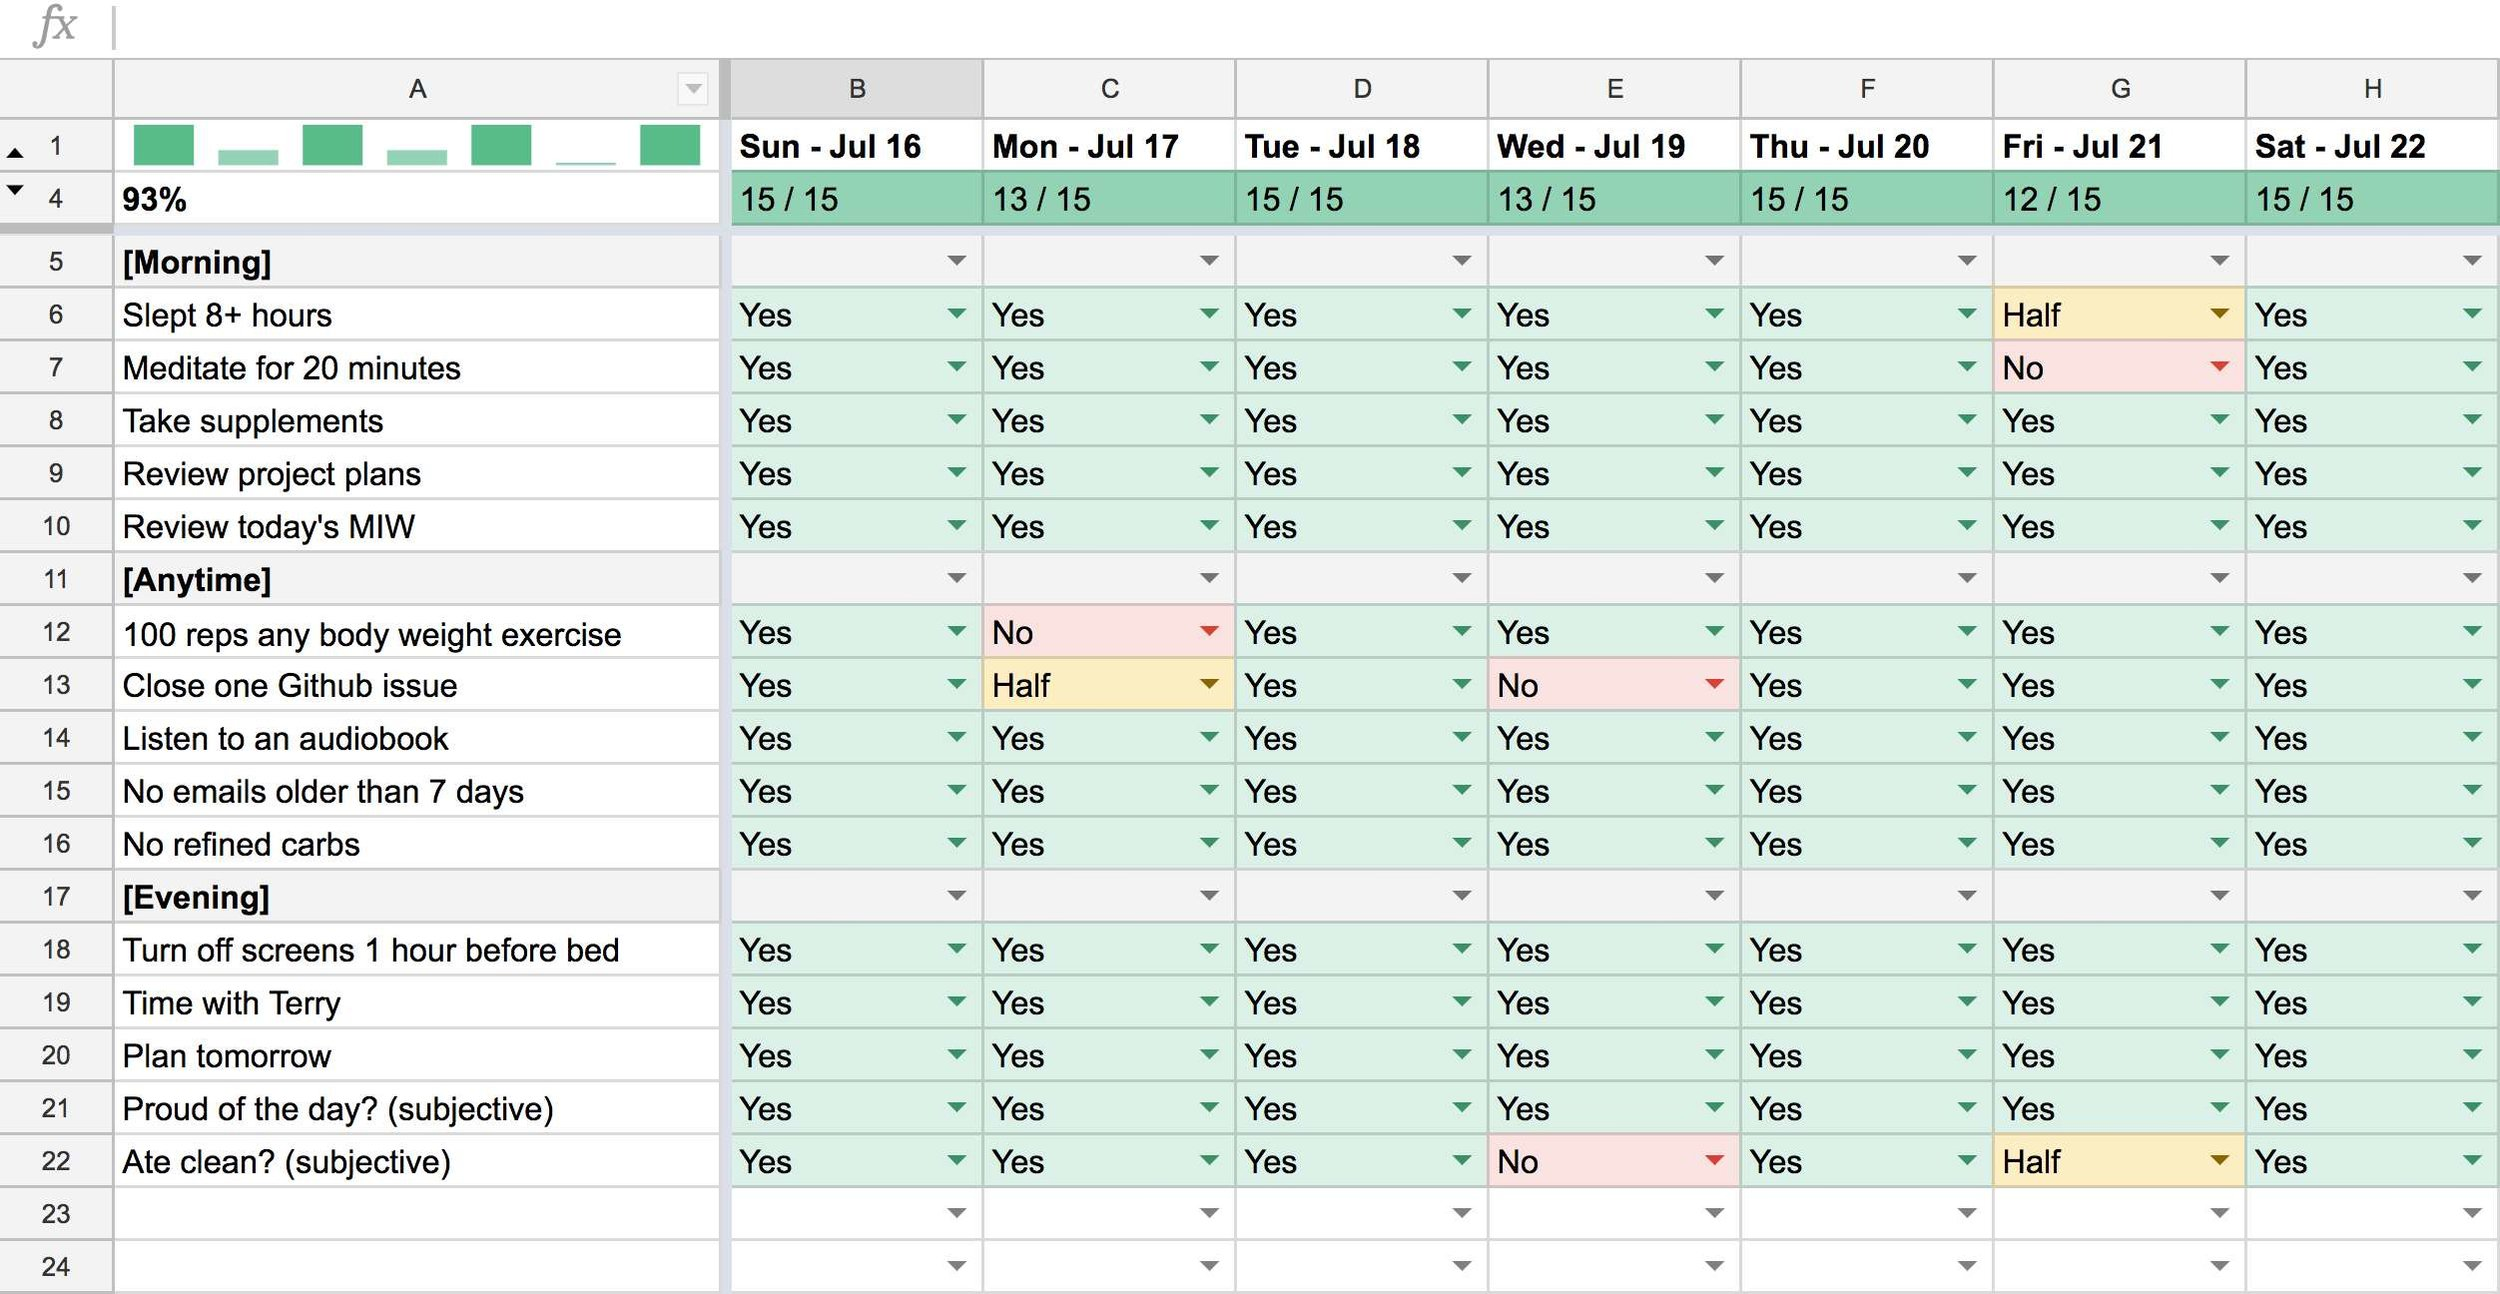 Lights Spreadsheet: A powerful tool to help ensure your most important habits happen every single day.